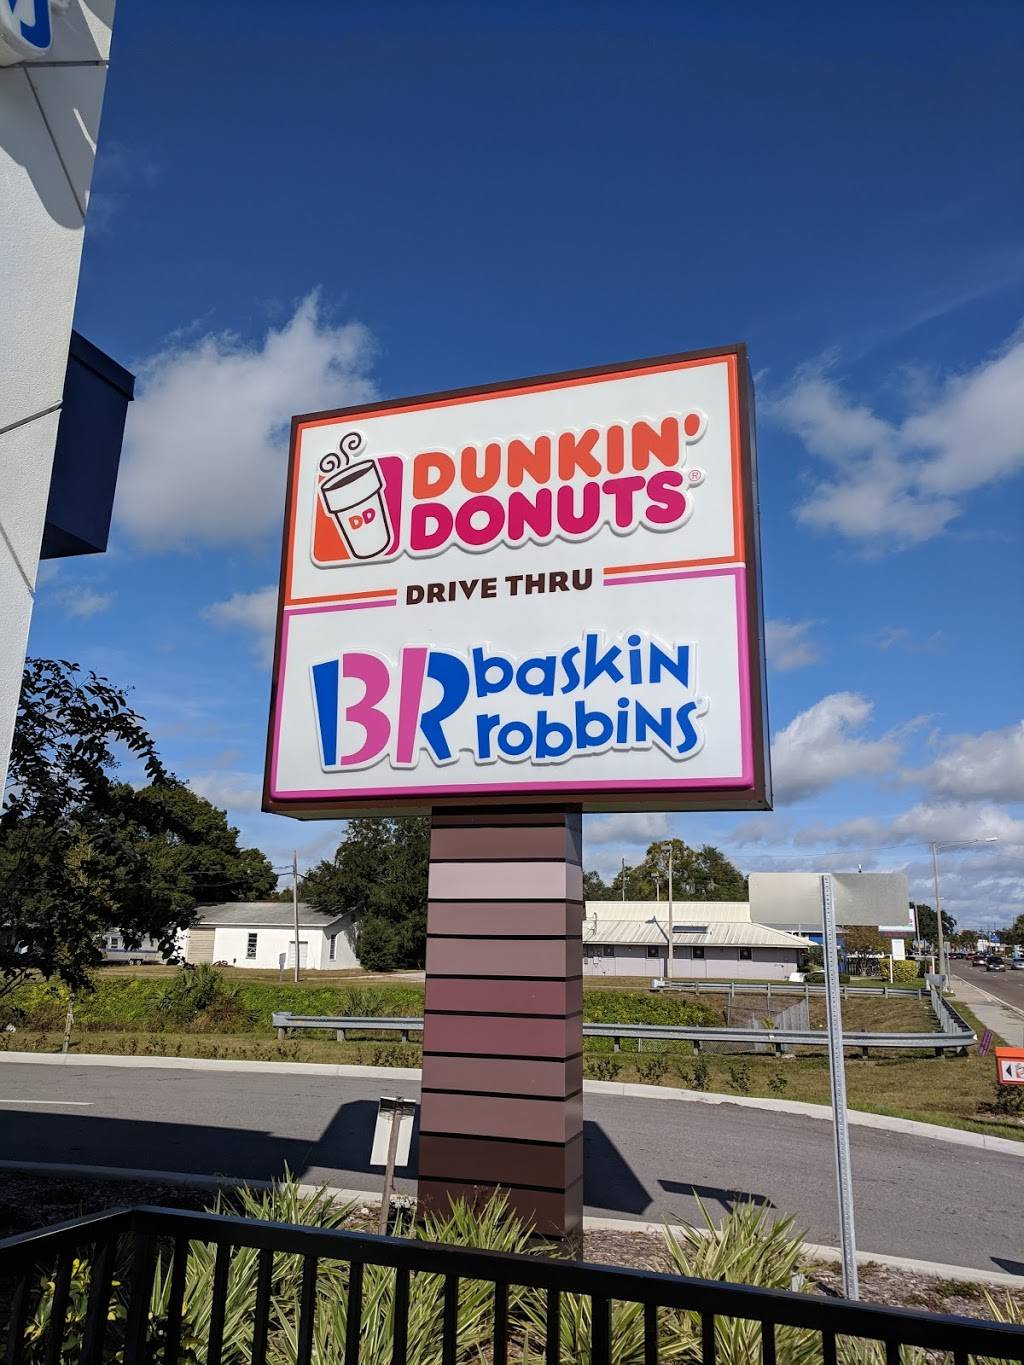 Dunkin Donuts   cafe   3934 49th St N, St. Petersburg, FL 33709, USA   7274829689 OR +1 727-482-9689